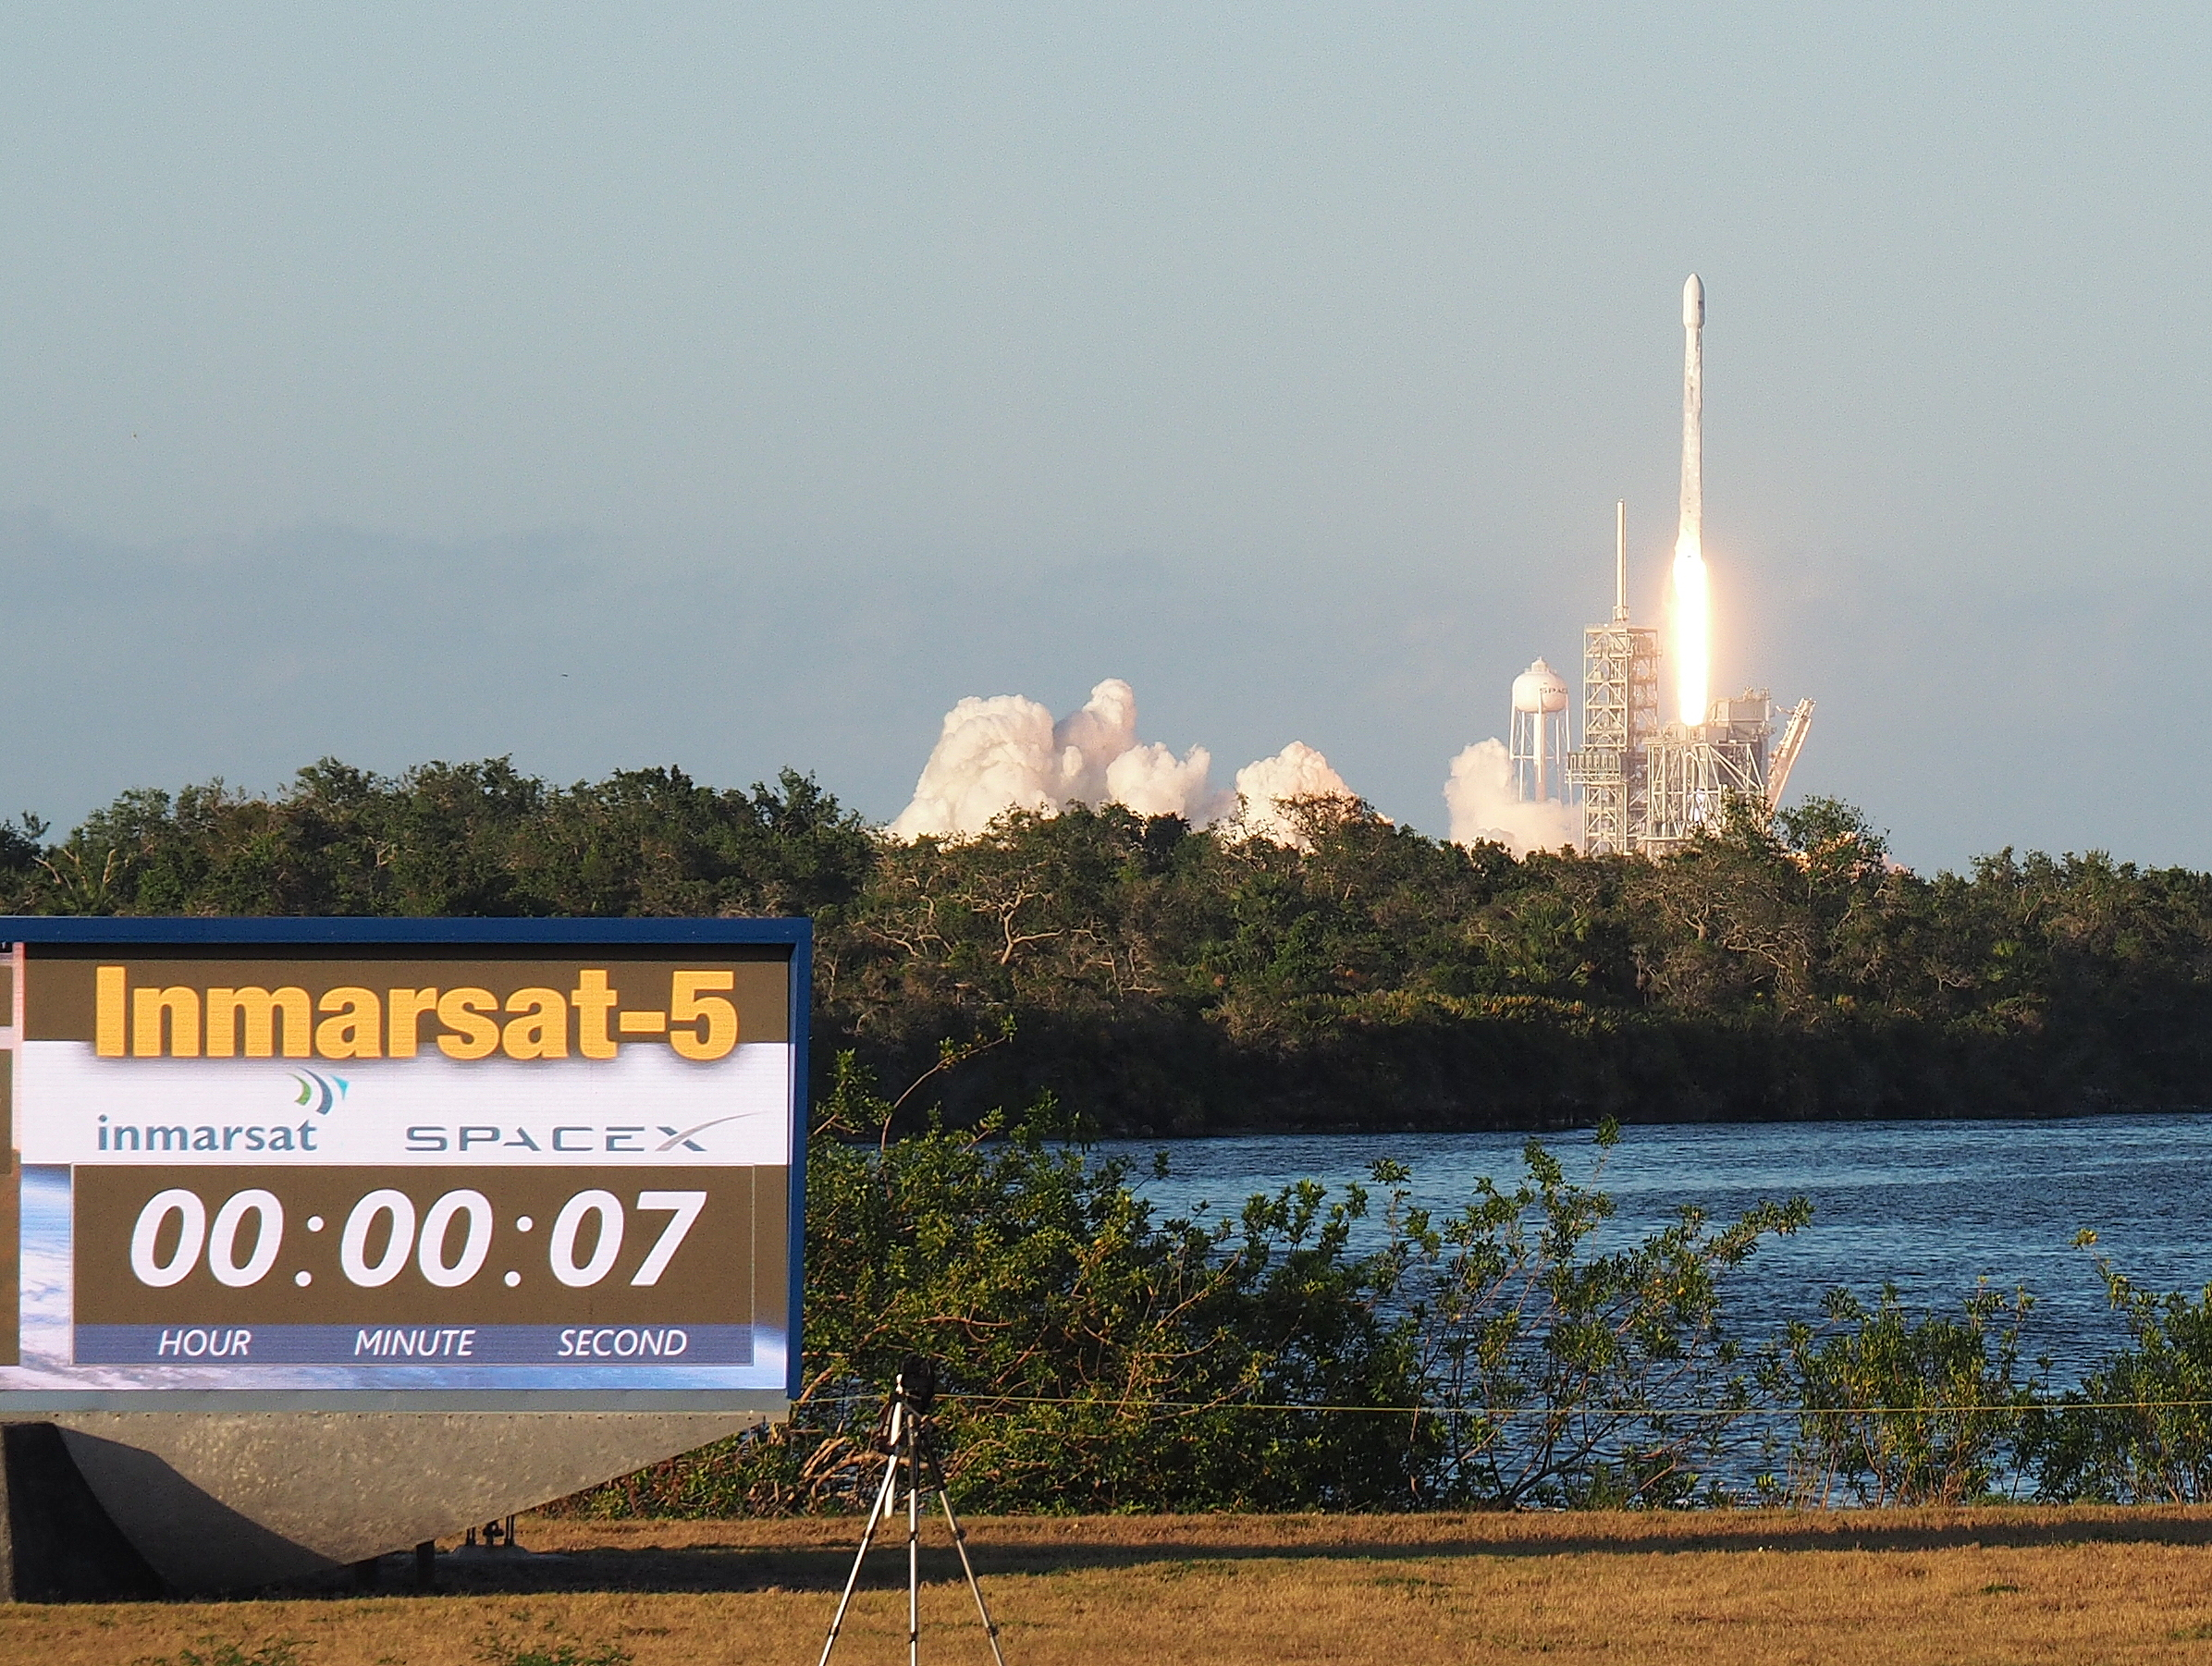 SpaceX Falcon 9 launches Inmarsat's I-5 F4 satellite. And the countdown clock is counting UP! Photo: Howard Slutsken